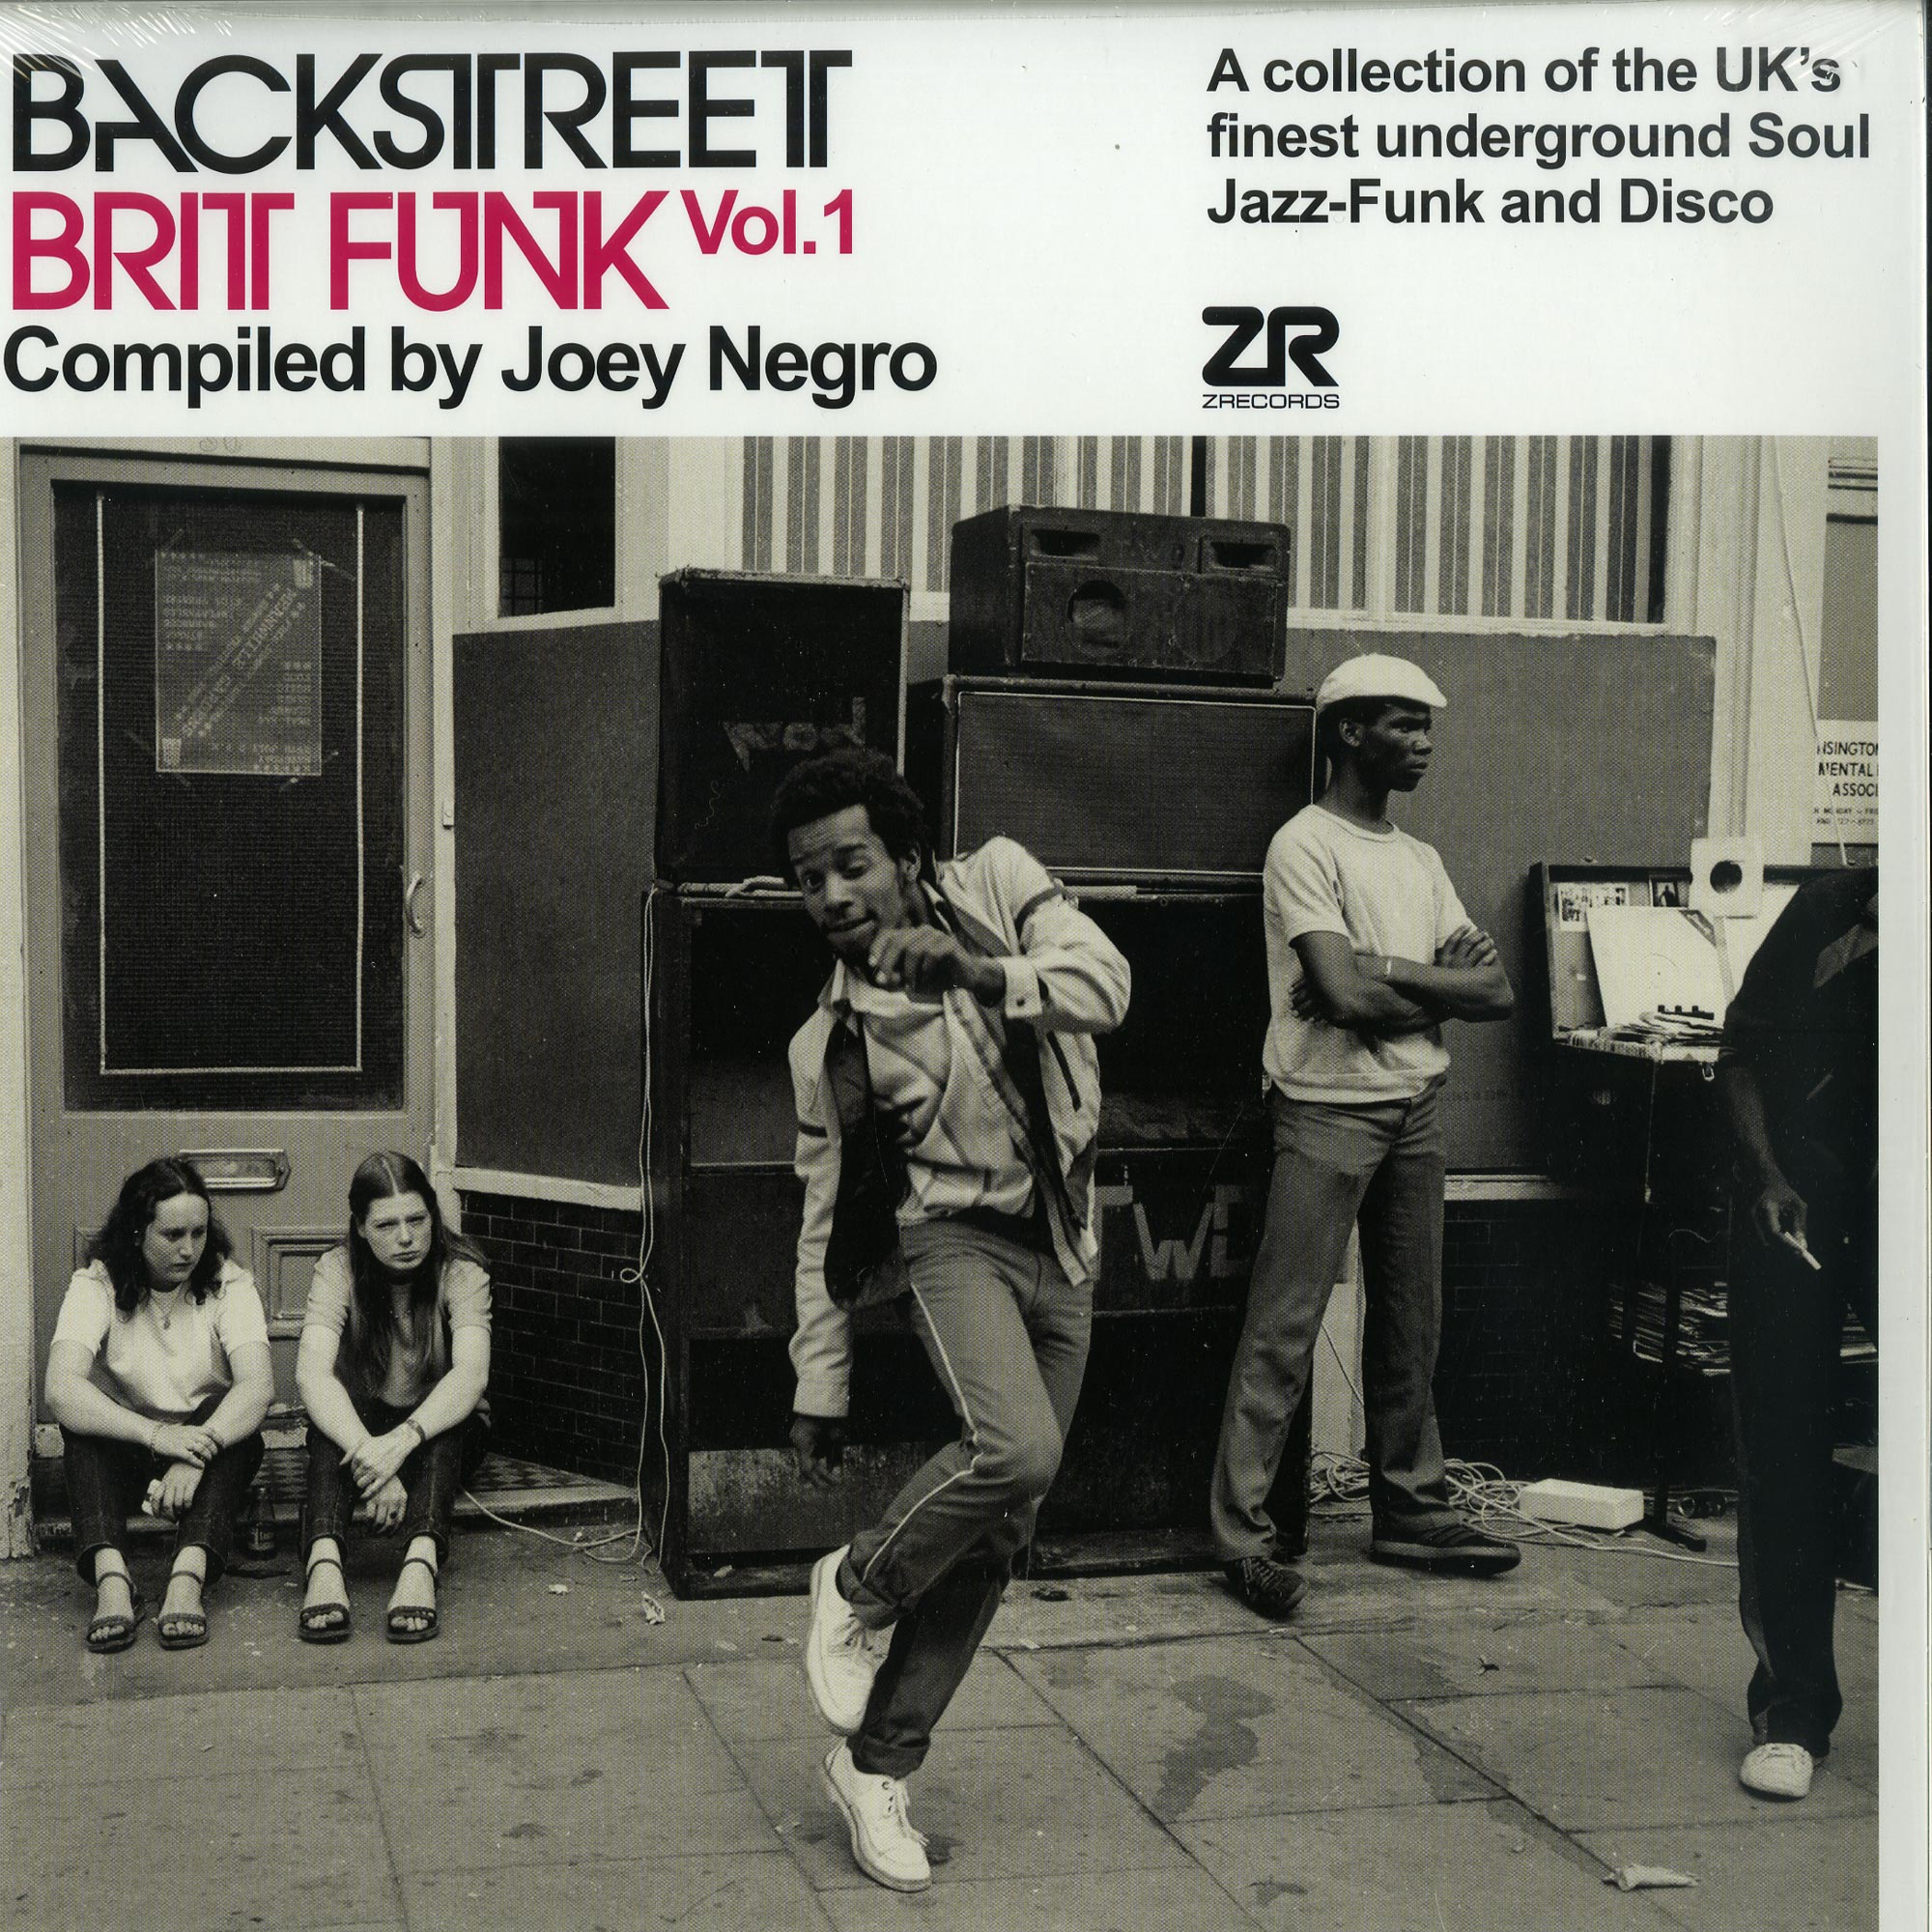 Various / Compiled by Joey Negro - BACKSTREET BRIT FUNK 1